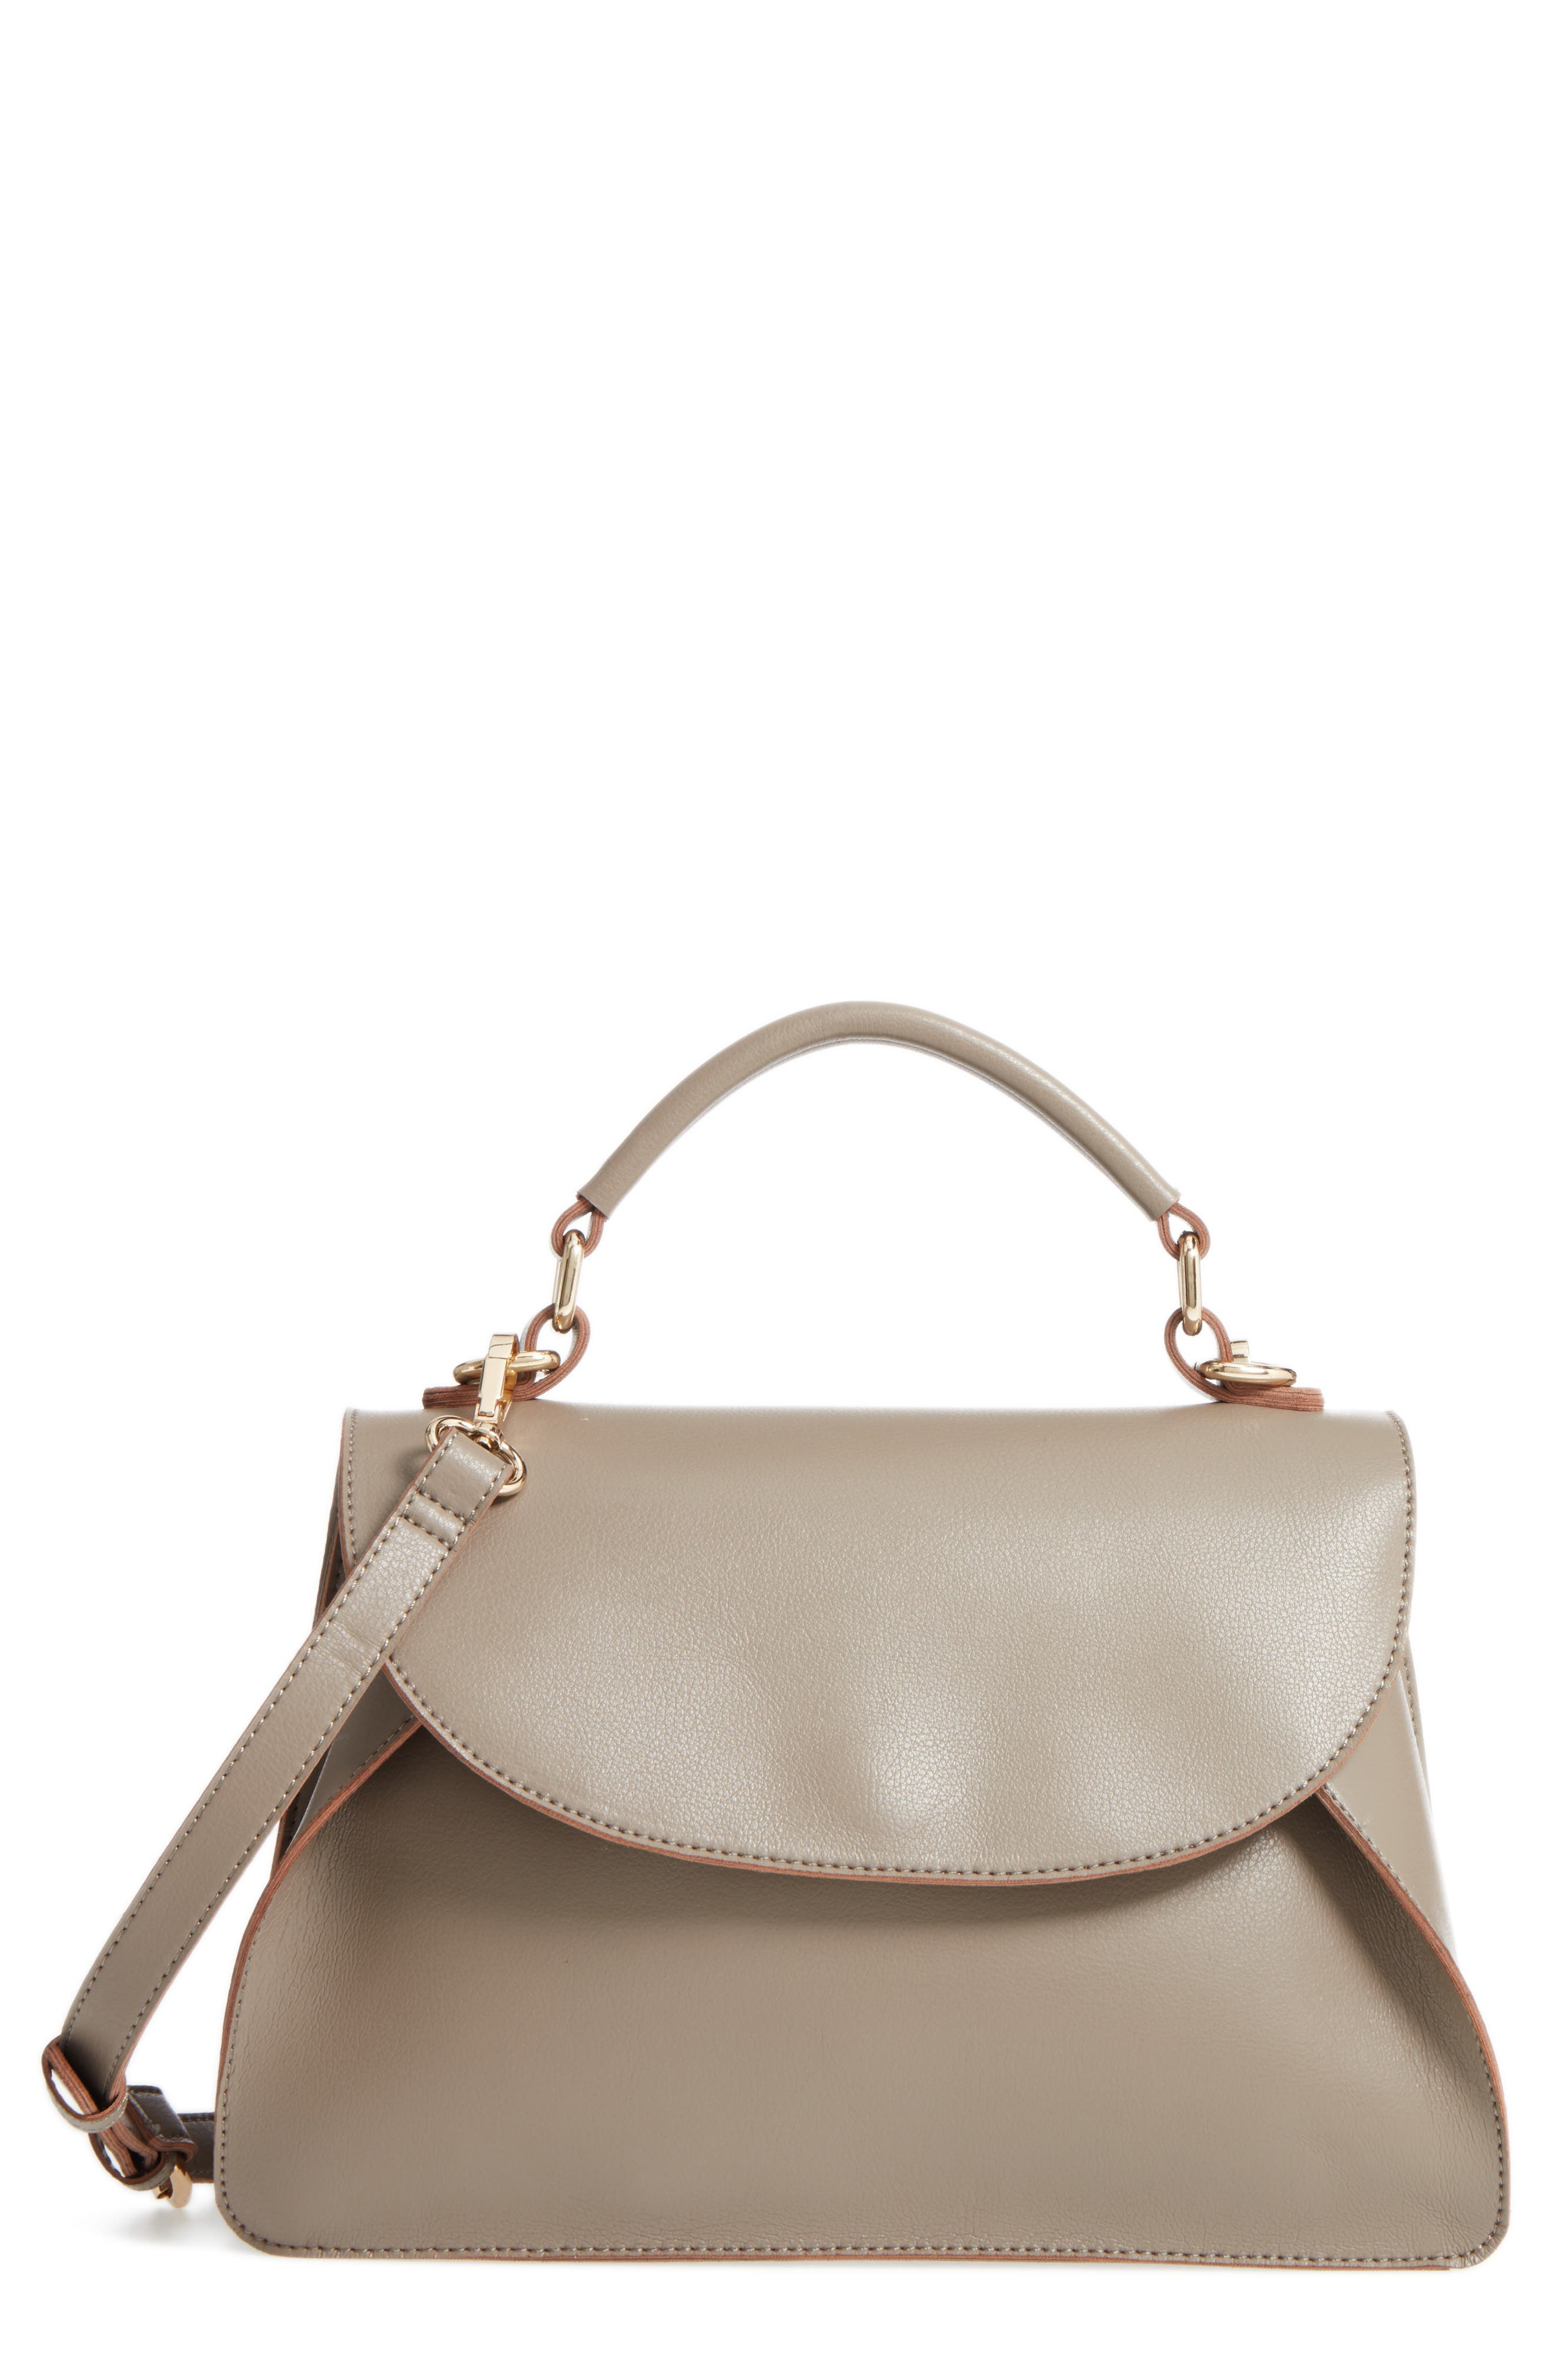 Izzy Faux Leather Top Handle Satchel,                             Main thumbnail 1, color,                             Taupe